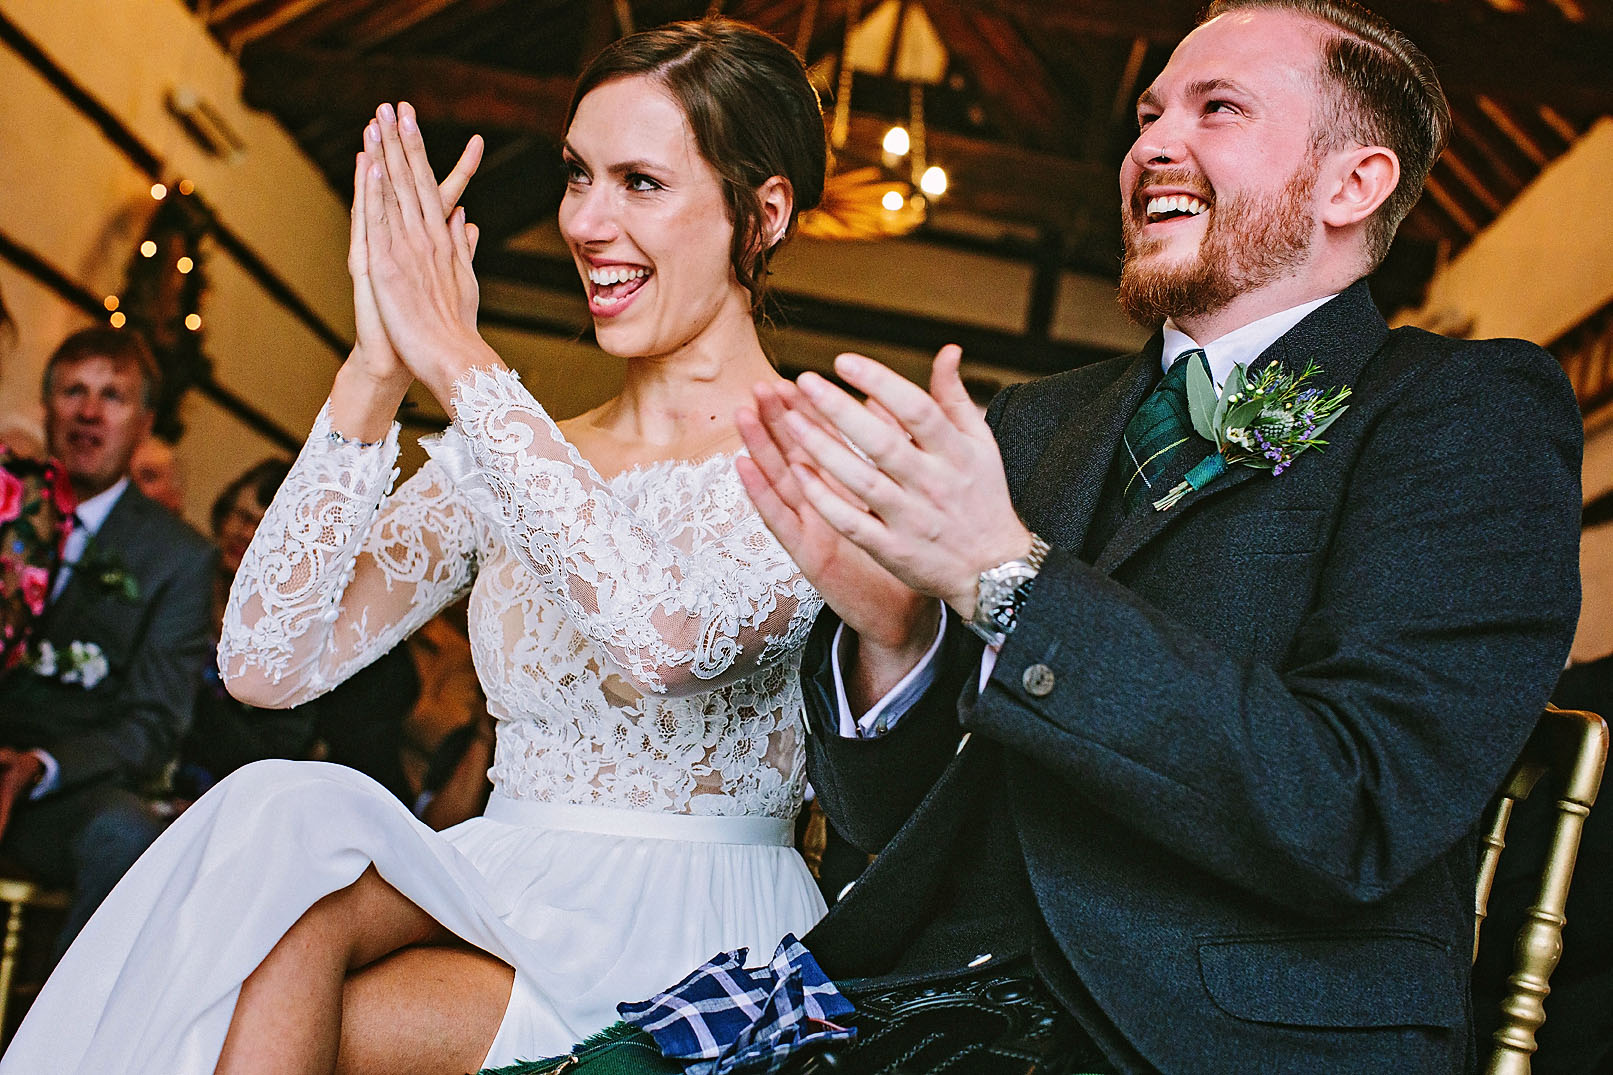 Bride and Groom clapping and laughing with tears during their alternative wedding ceremony at Lillibrooke Manor and Barns